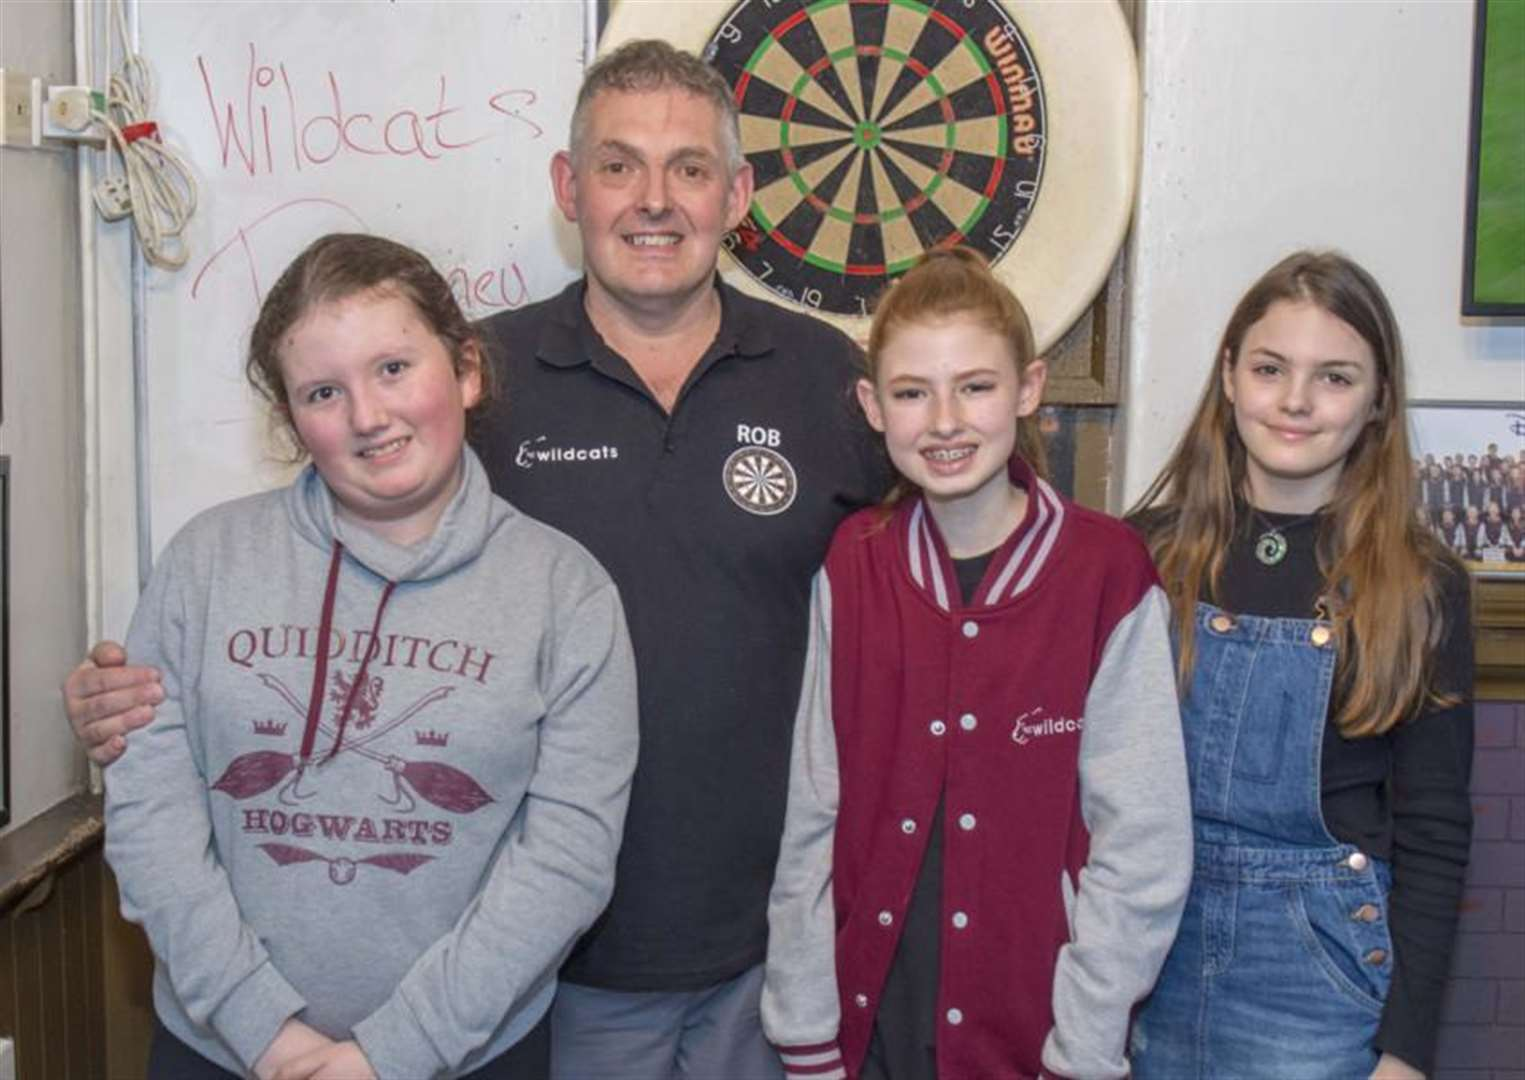 Rob on target to help[ talented Wildcats dance troupe